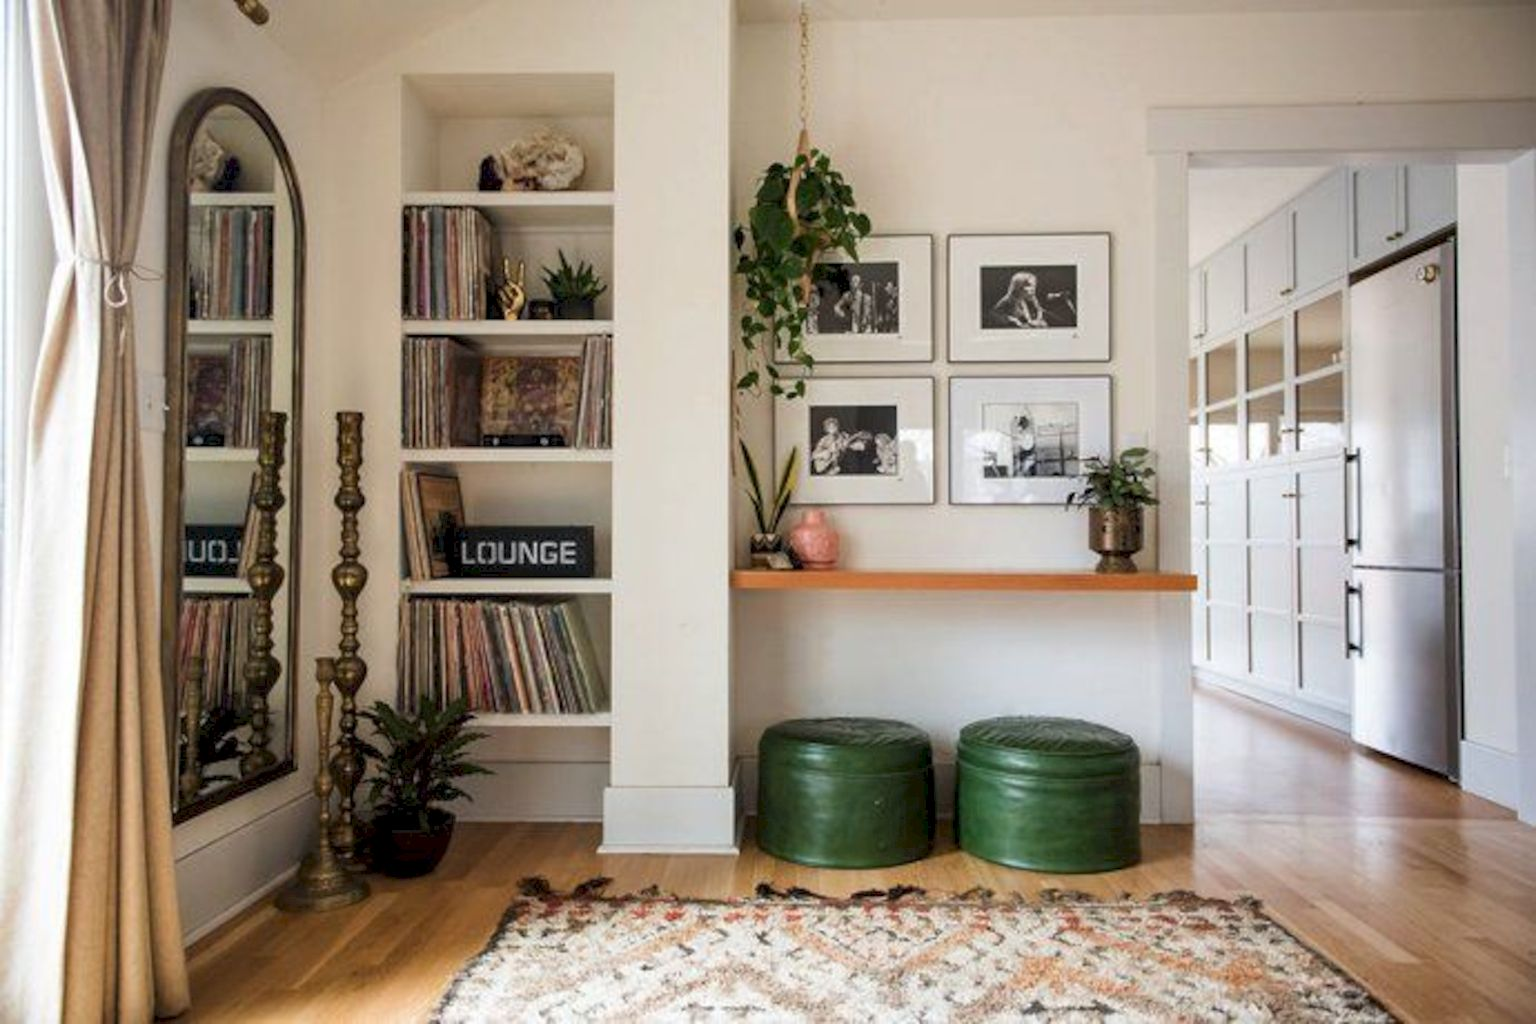 Easy interior updates with artistic textile decorations giving freestyle home style that rich of diverse and eclectic accents Image 33